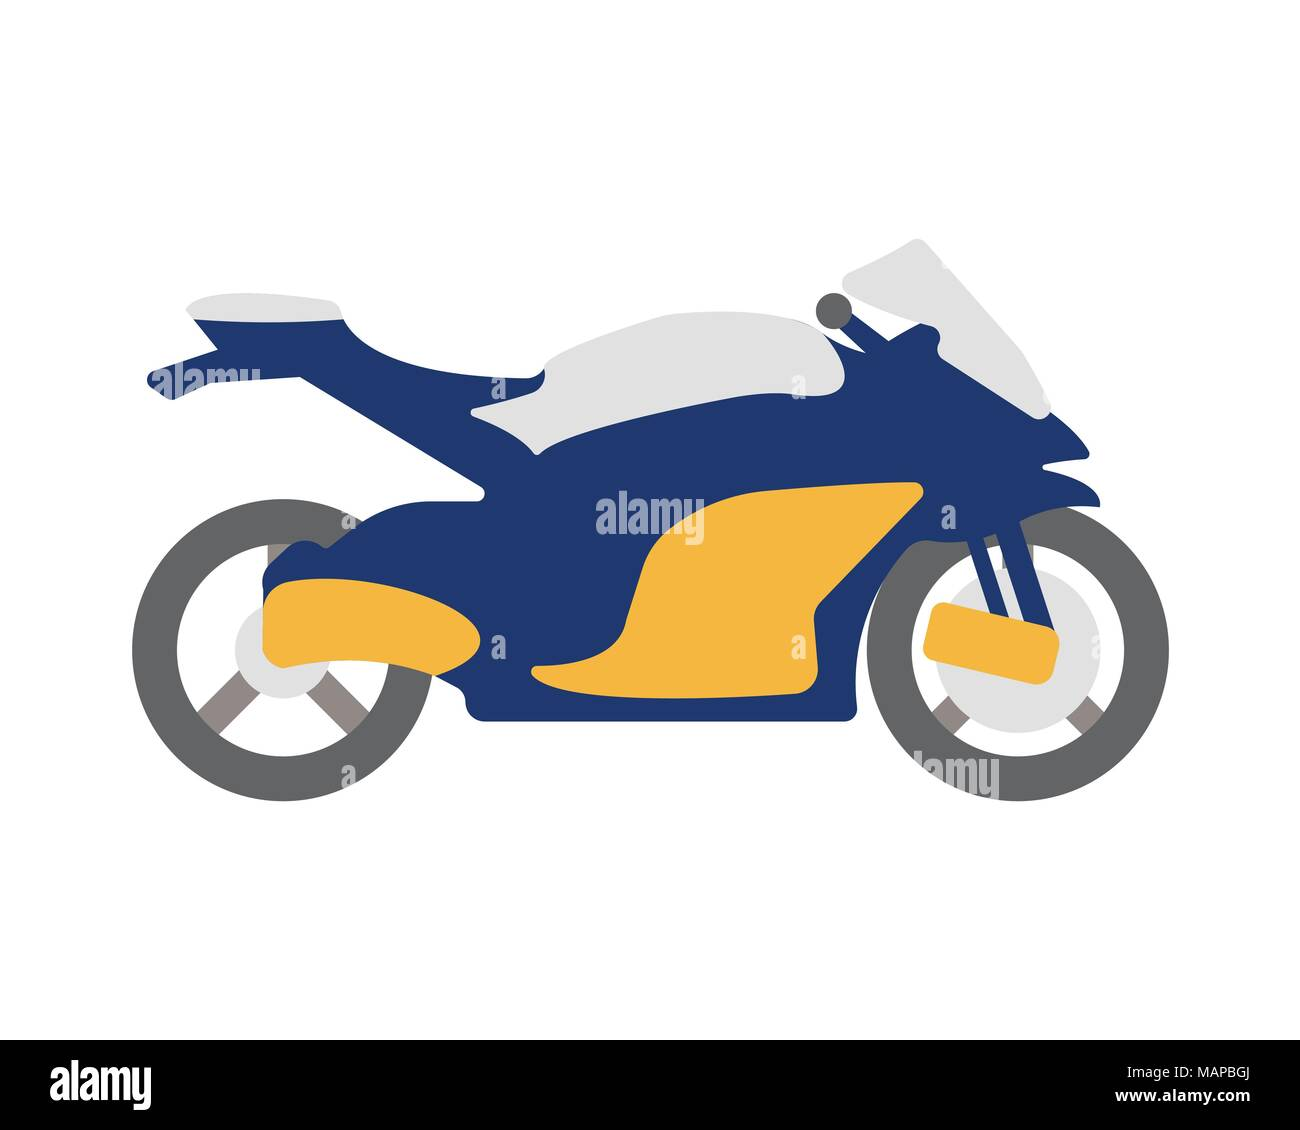 Moto Vector Vectors Stock Photos Images Cartoon Dirt Bike Engine Diagram Flat Icon And Logo Illustration Image